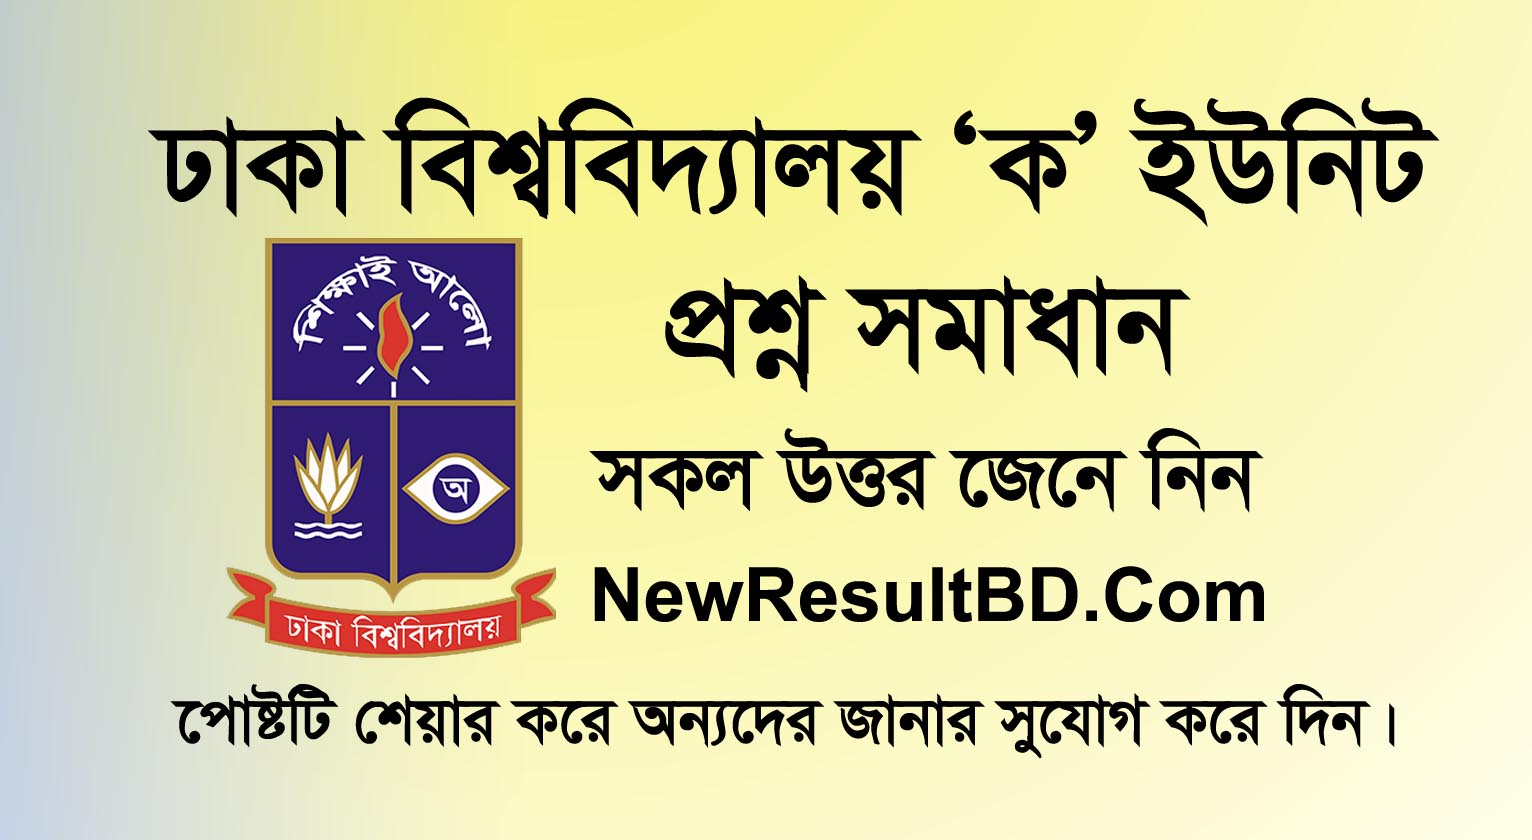 University of Dhaka Admission Test 2019-20 A Unit Question Solutions, A Unit Question Solve, DU A Unit Question Solution, DU KA Unit Answers, Science Solve